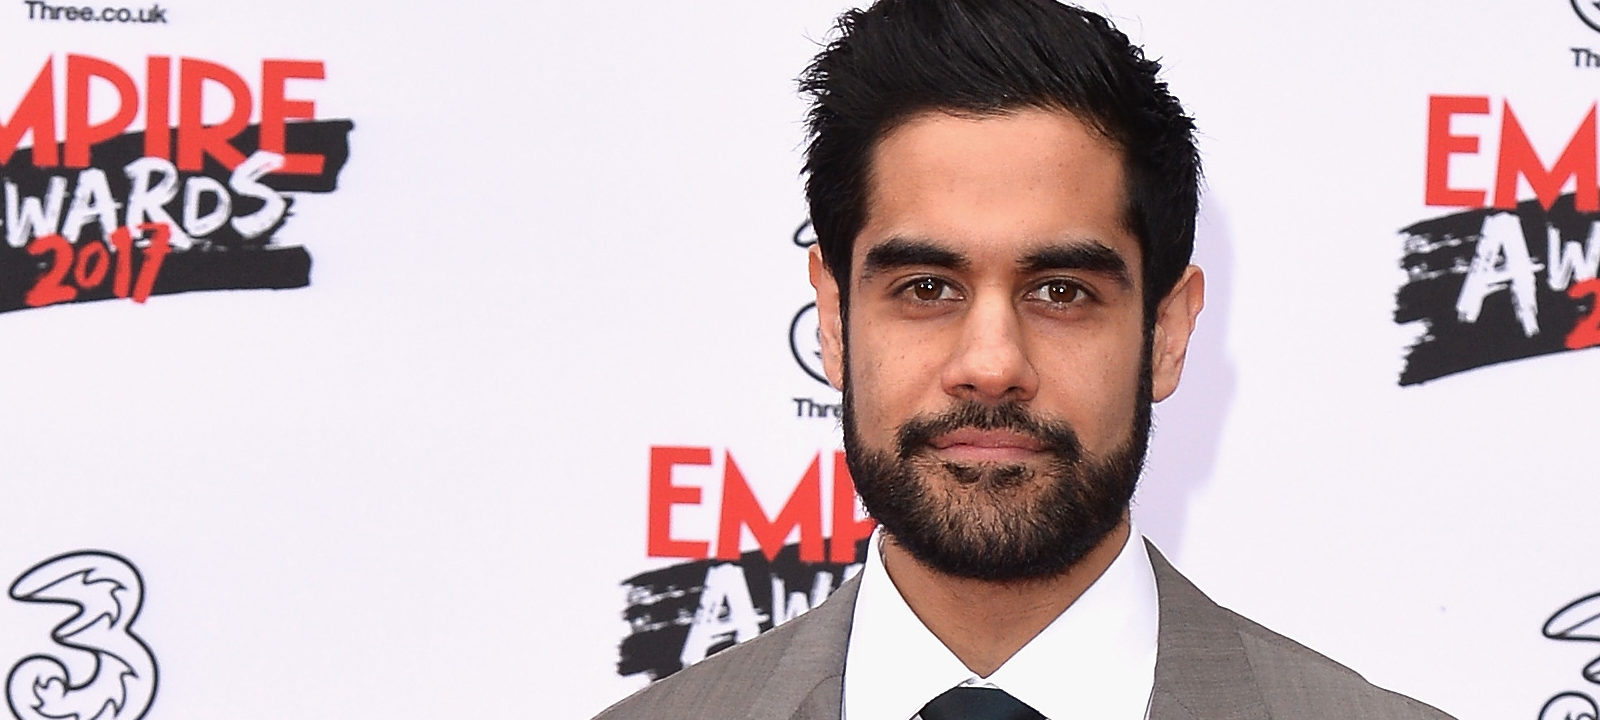 Actor Sacha Dhawan attends the THREE Empire awards at The Roundhouse on March 19, 2017 in London, England.